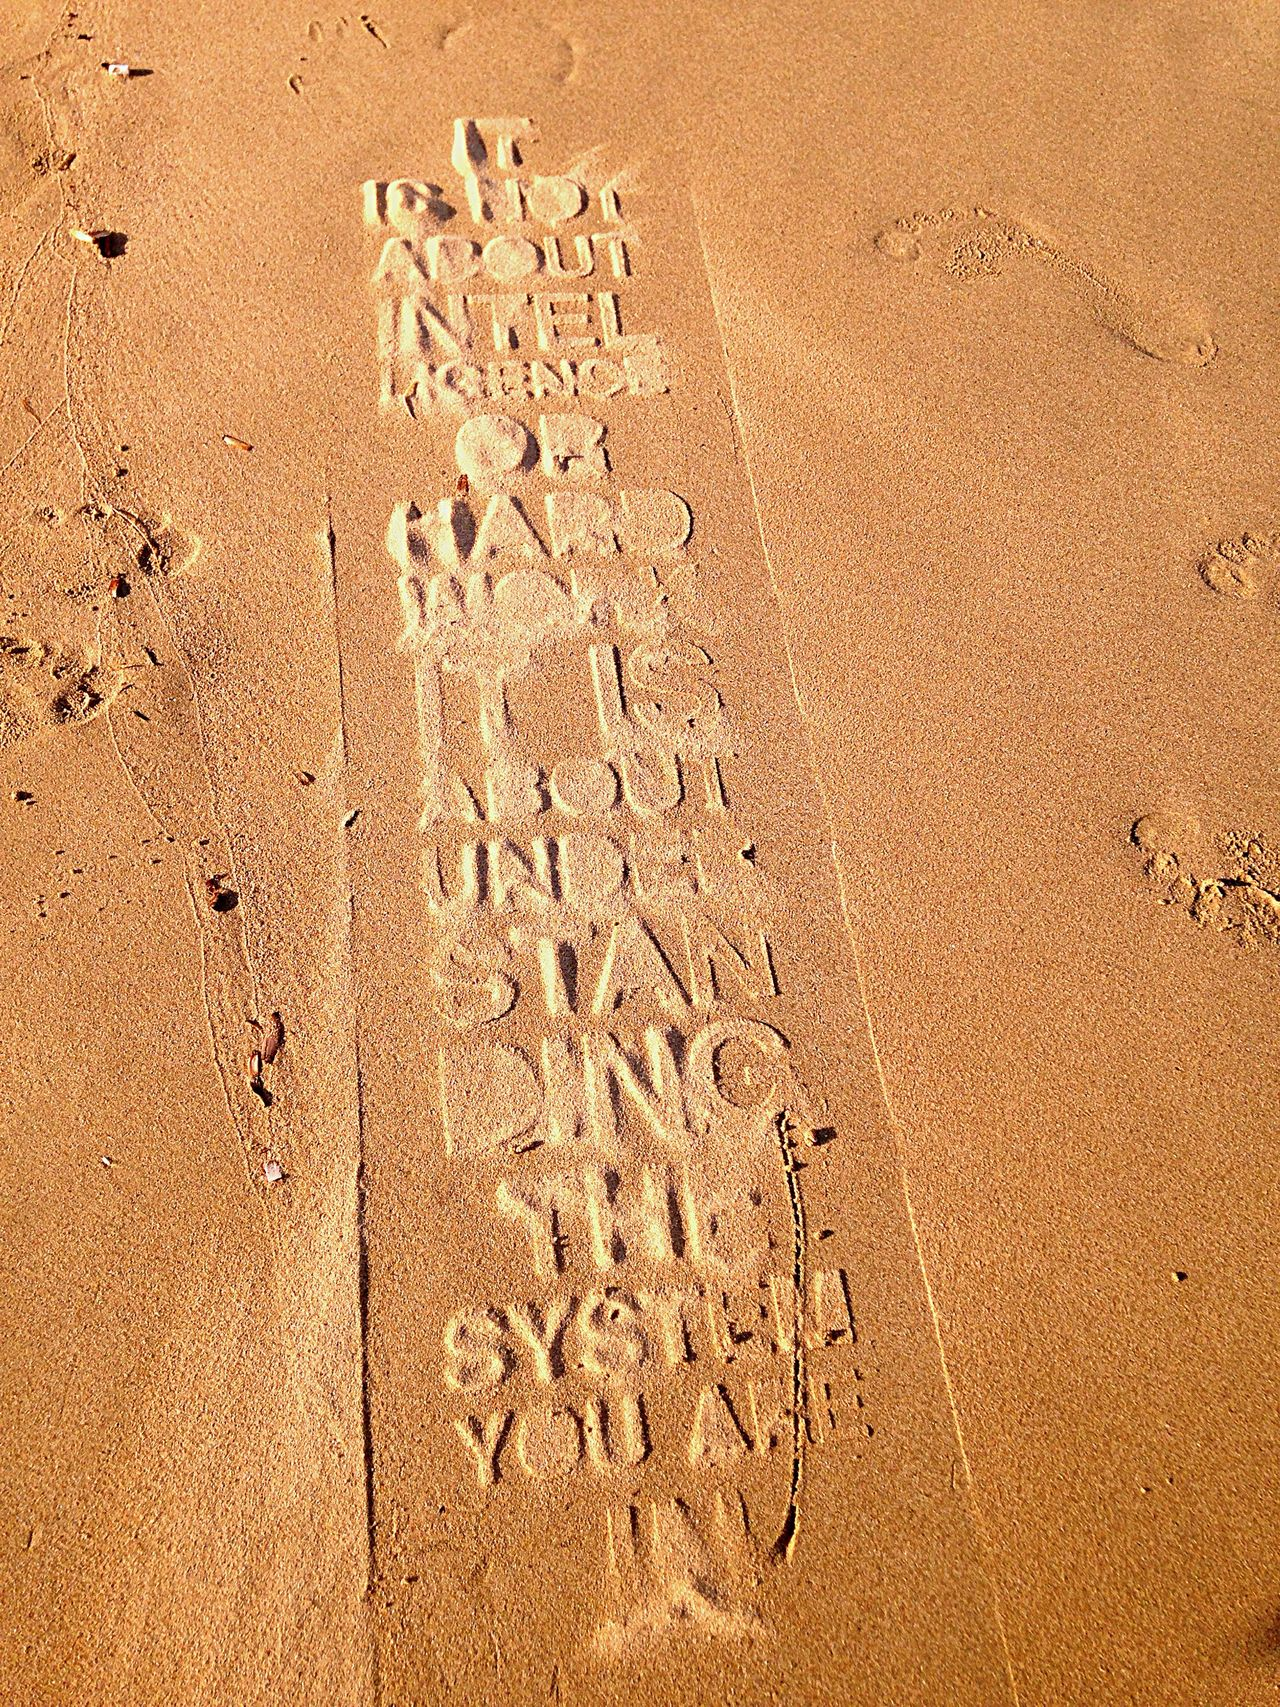 Message To The World Nature Act Nature Art Stencil Stencil On Sand Freedom Summer 2016 Cyclades Greece